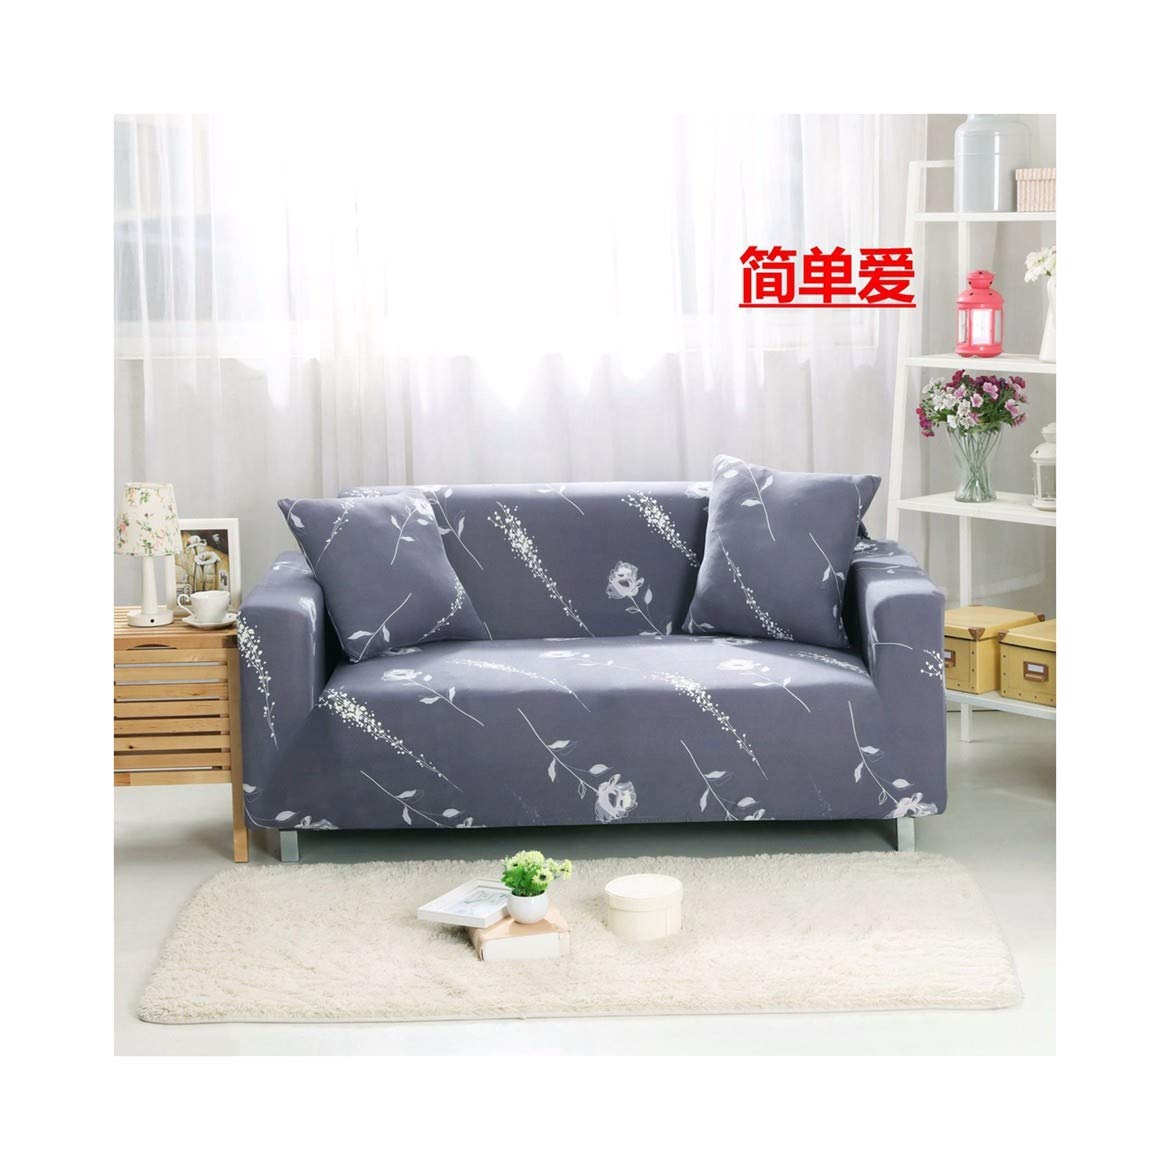 4seat VGUYFUYH Flower Patterns Seasons Universal Sofa Cover Polyester Full Package Elasticity Home Universal Sofa Cover Simple Fashion One Piece Durable Dust-Proof Pet Dog Predective Cover,4Seat